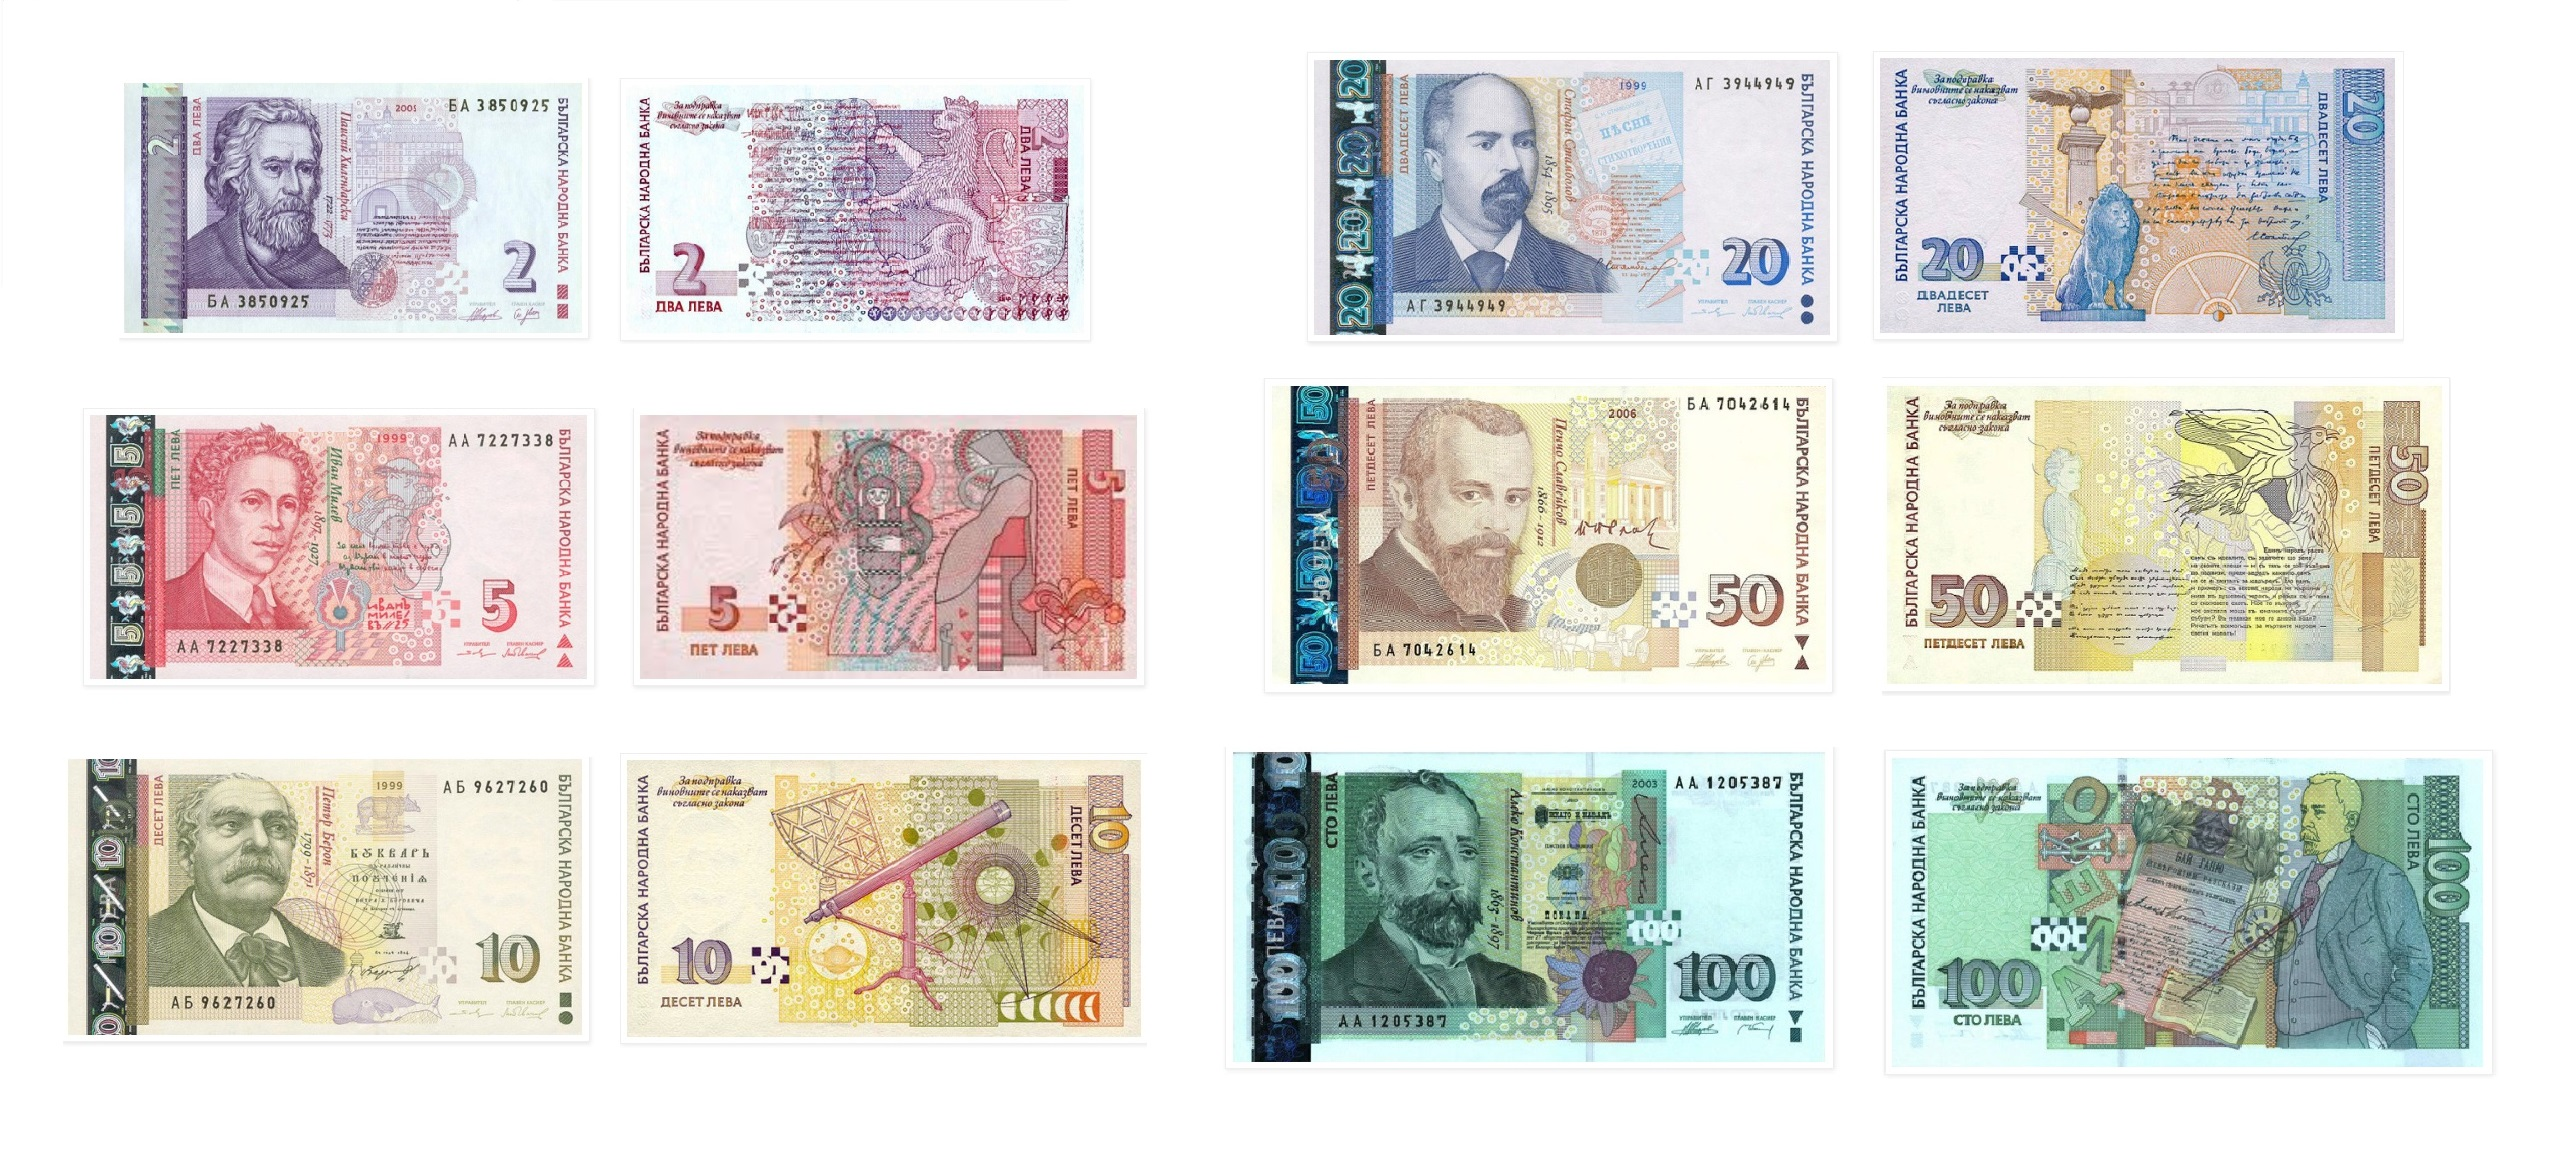 Information about foreign currency